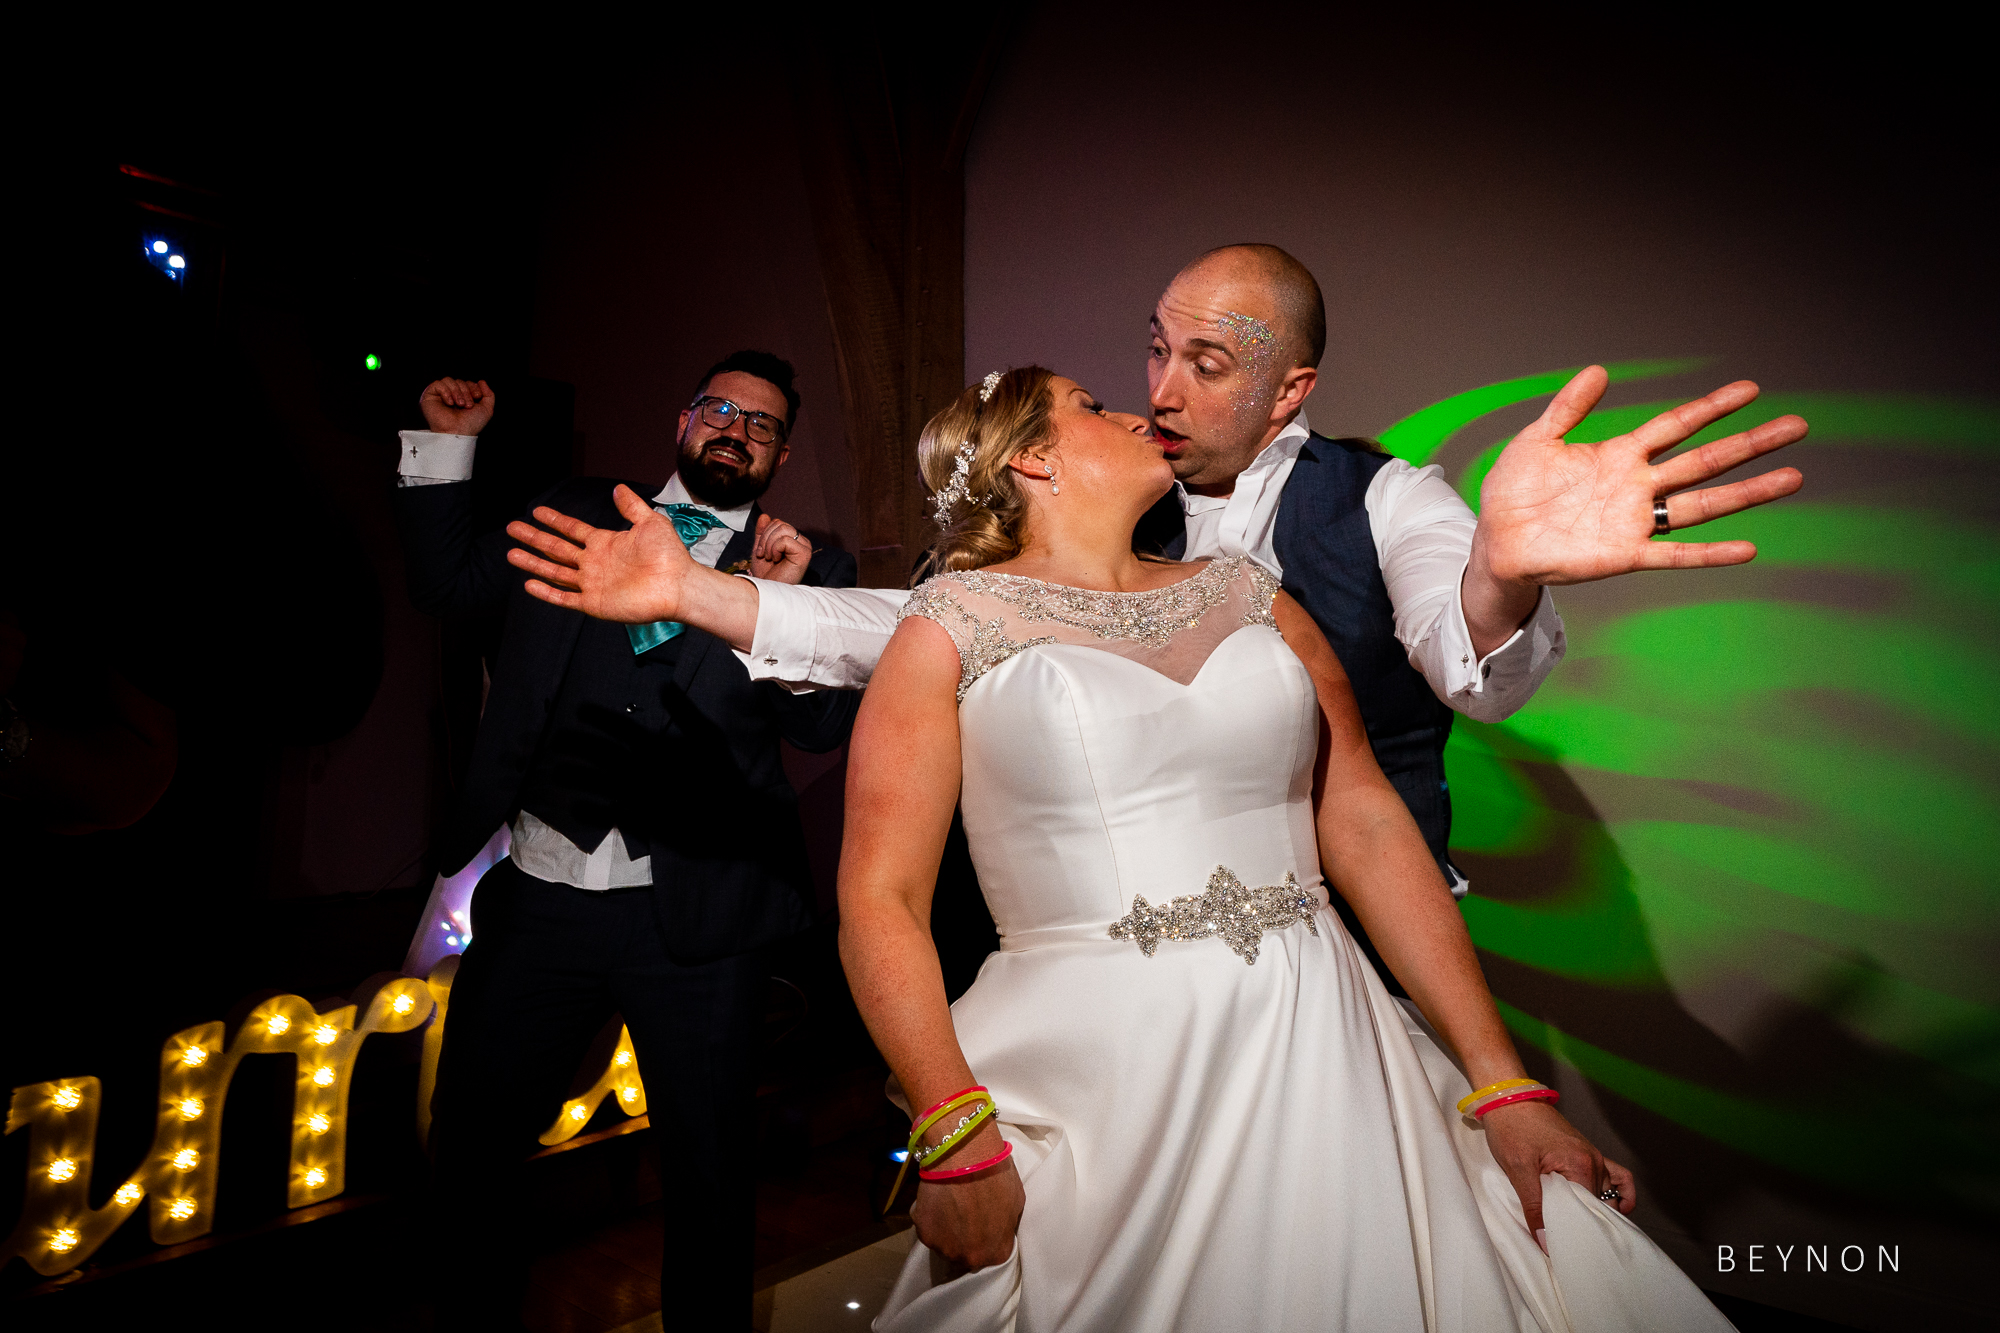 Bride and groom enjoy dancing together